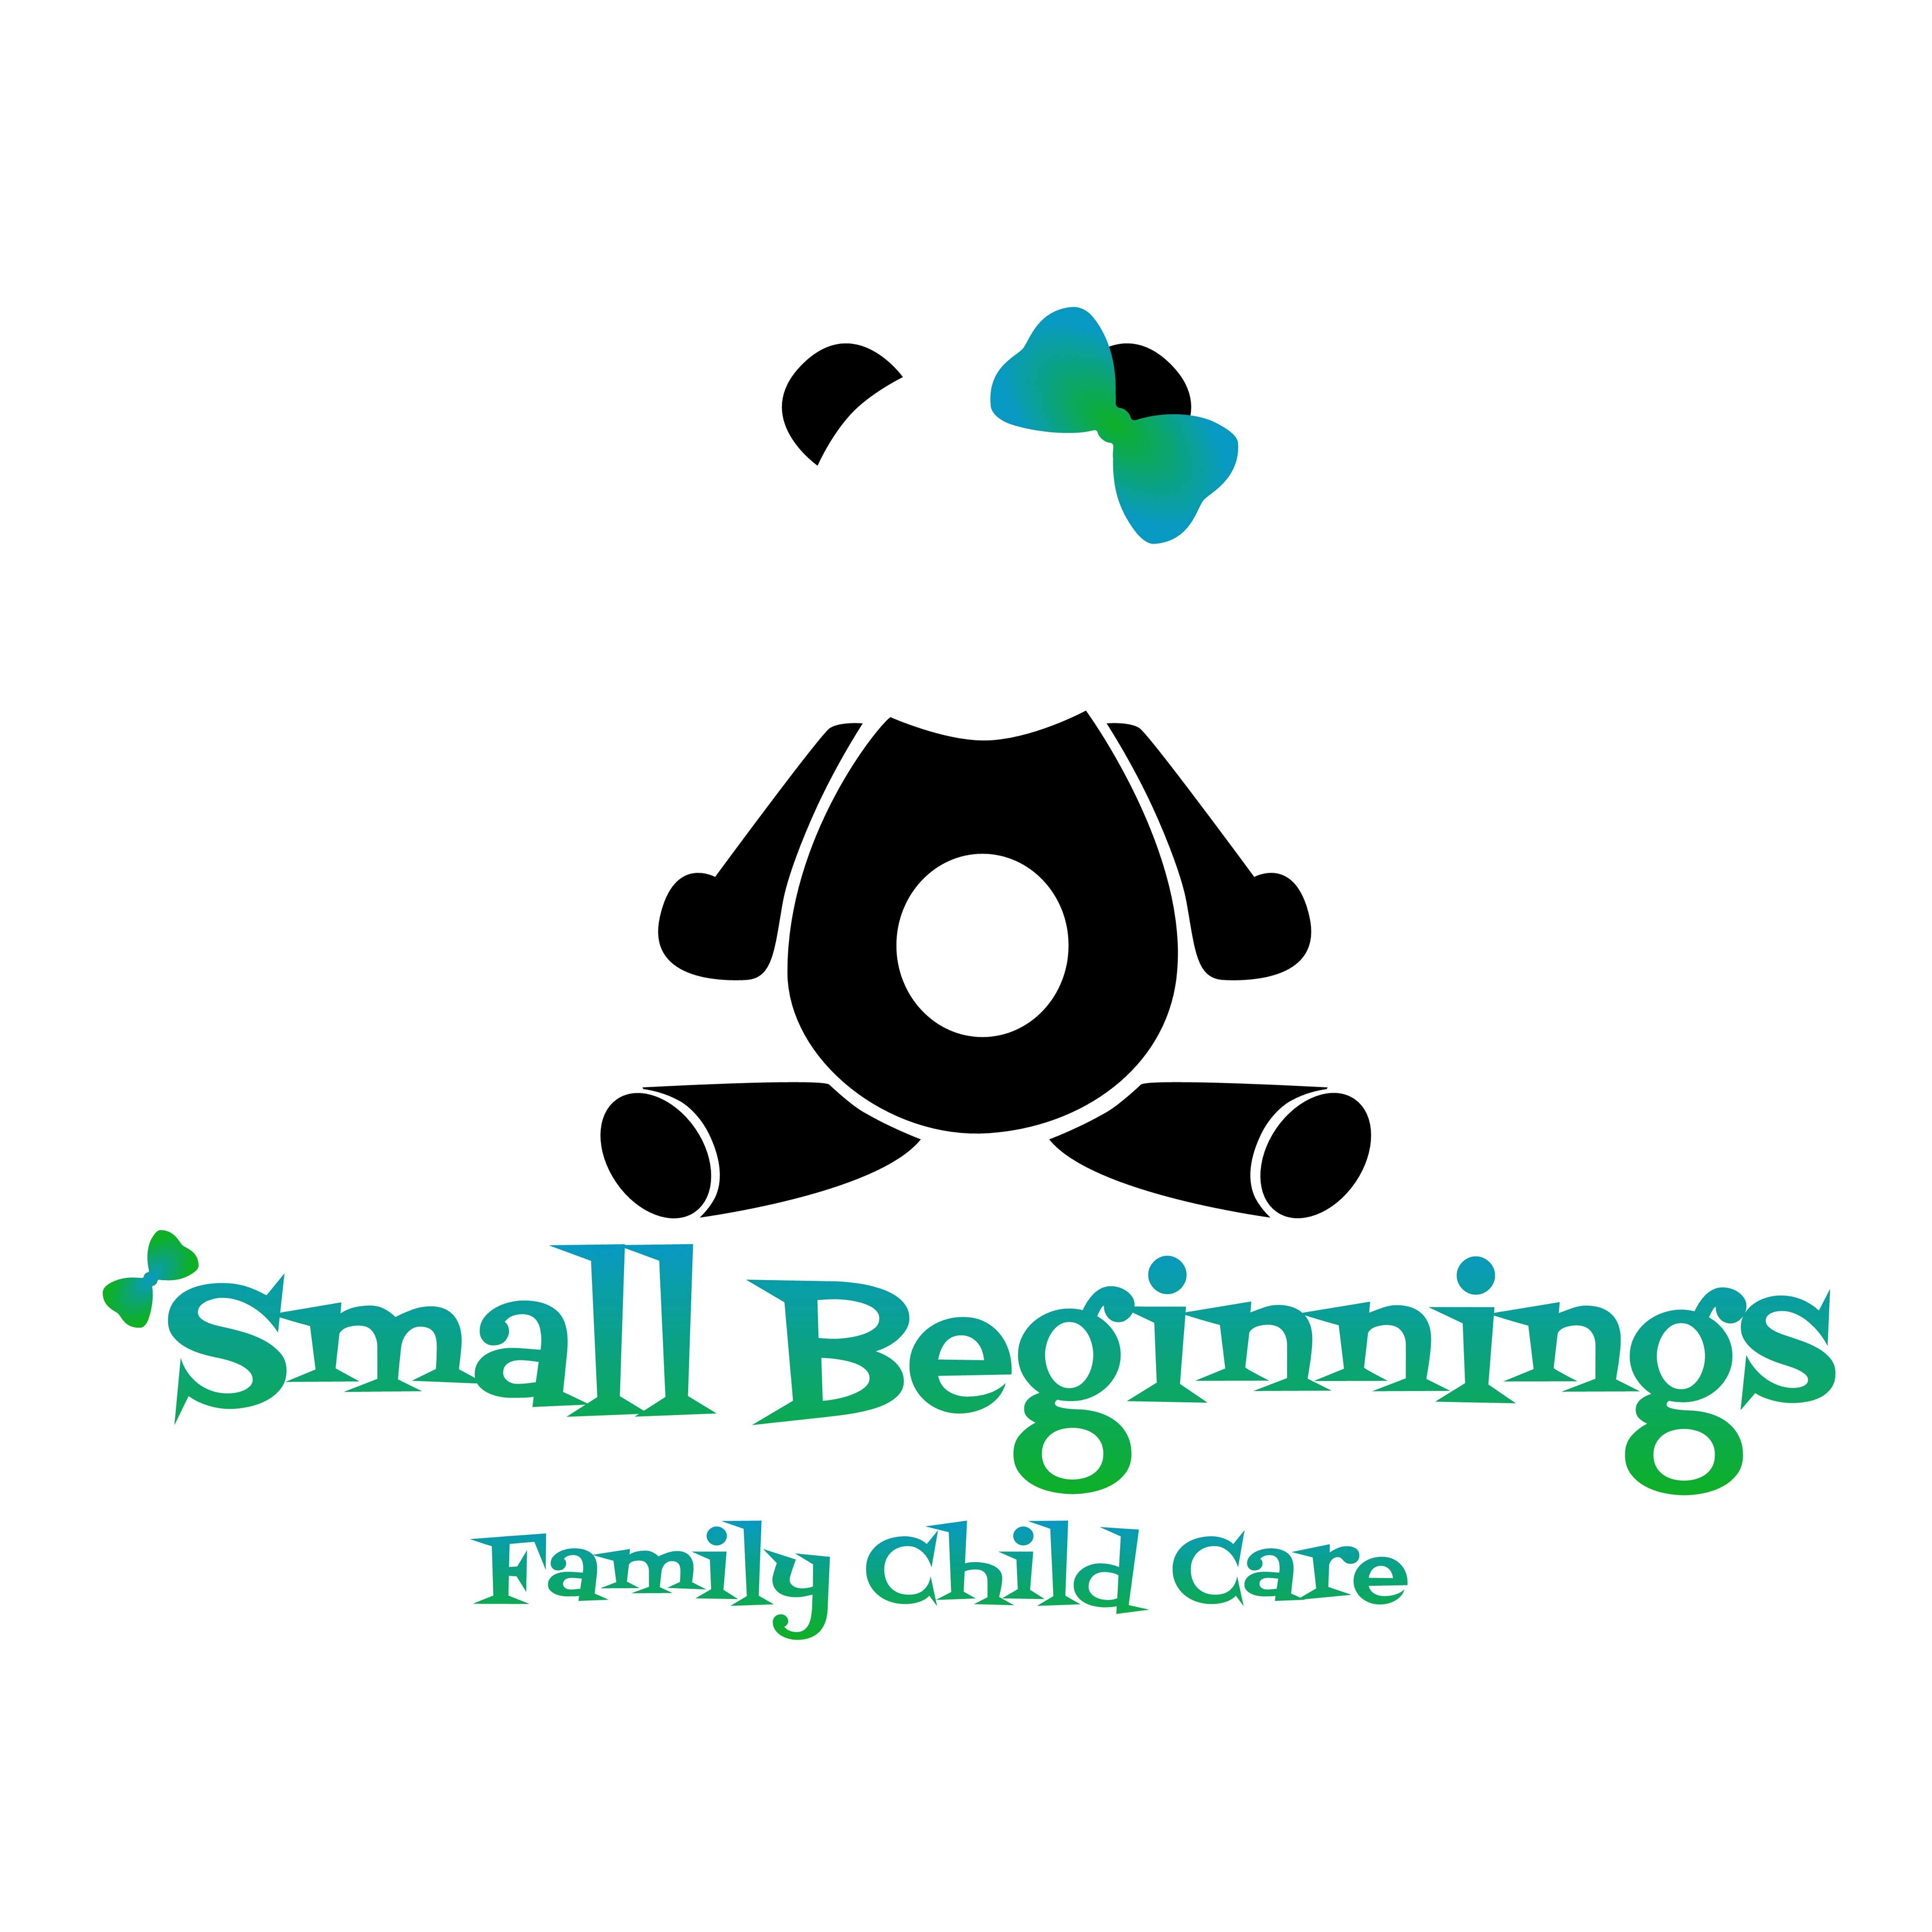 Small Beginnings Family Child Care